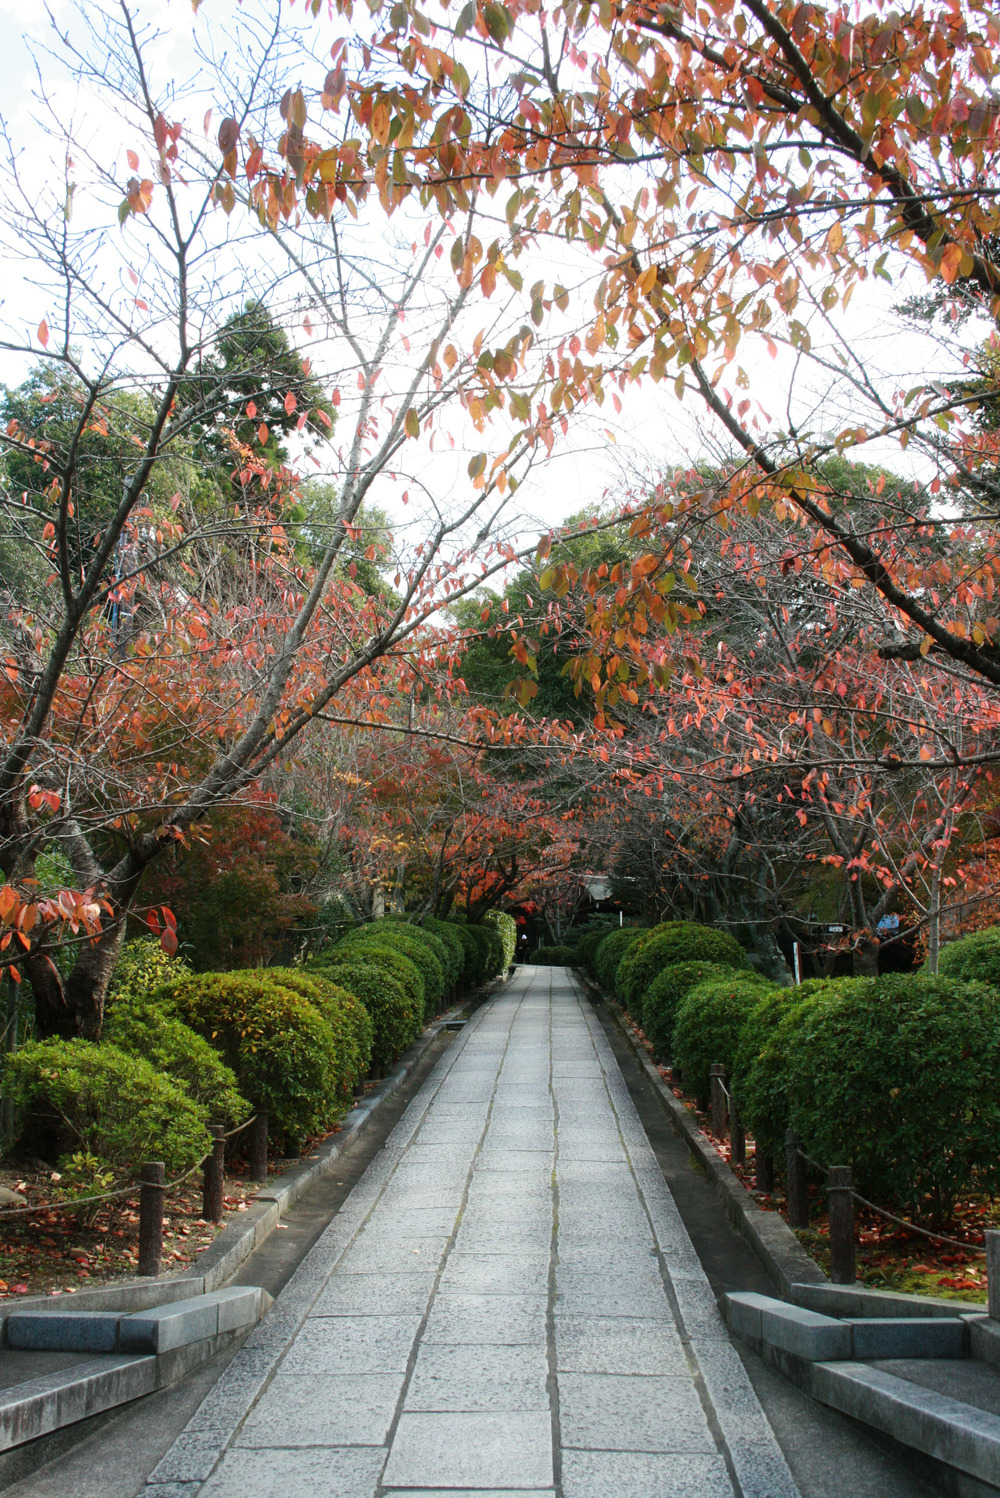 One of the many charming walkways through Kyoto.